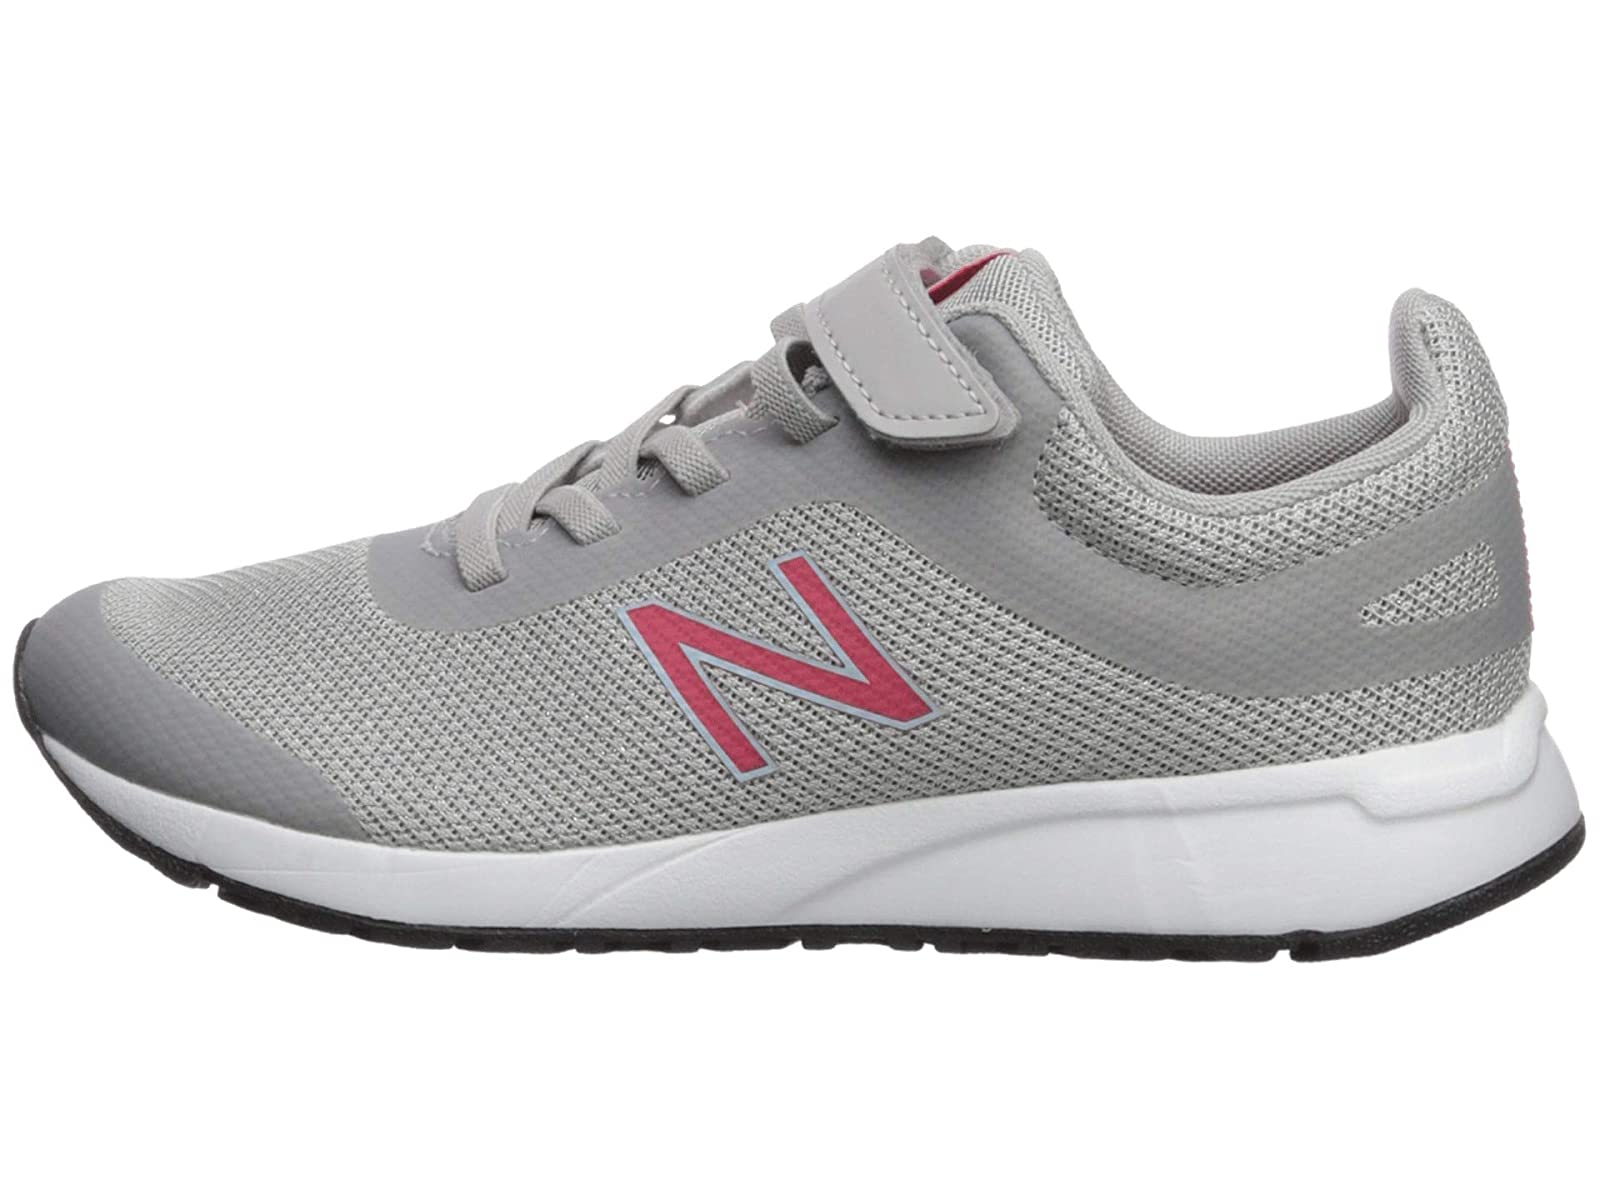 b57c4de7 Details about Girls's Shoes New Balance Kids 455v2 (Little Kid/Big Kid)